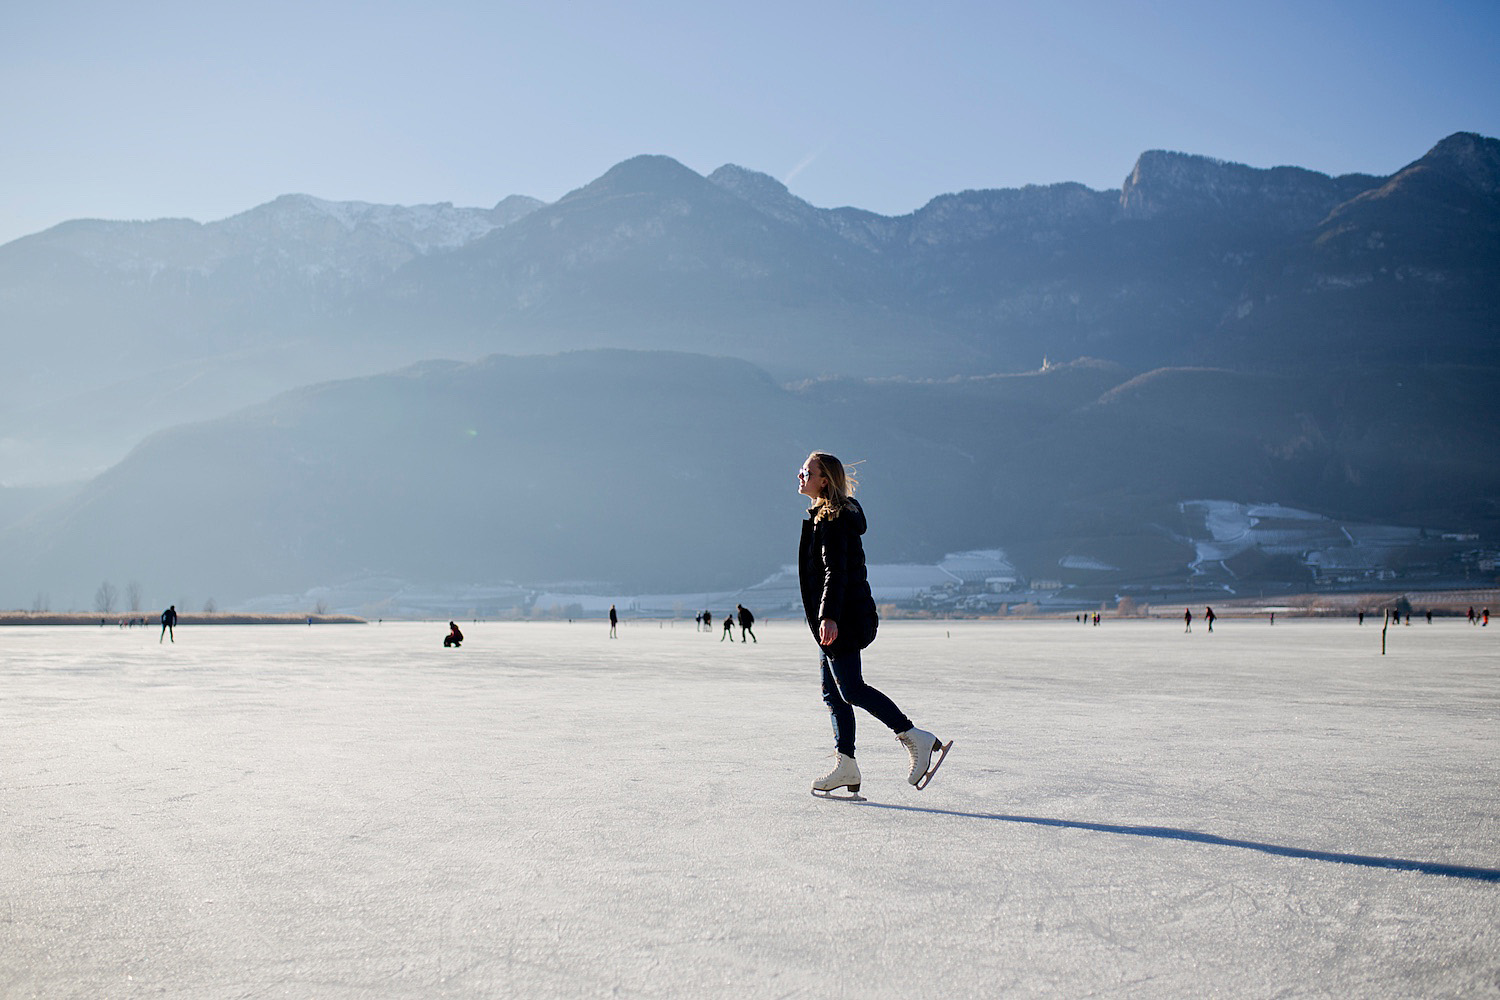 <em>Winter holidays in South Tyrol</em><br>Ice skating on Kalterersee